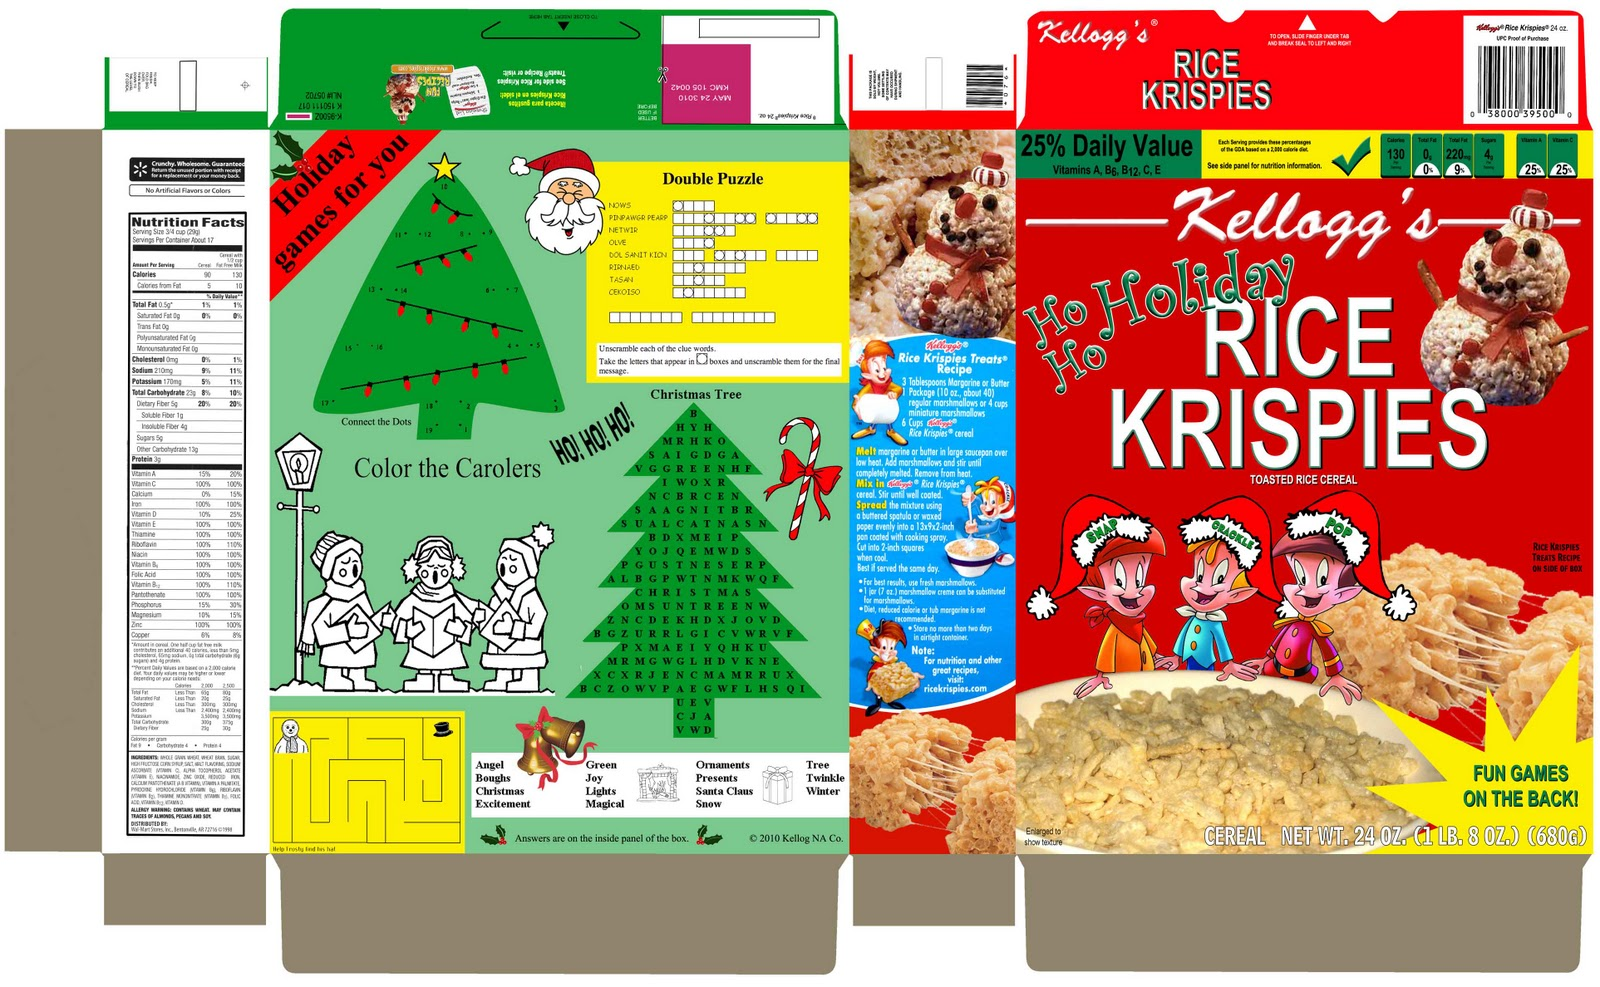 design your own cereal box template - photoshop skillz